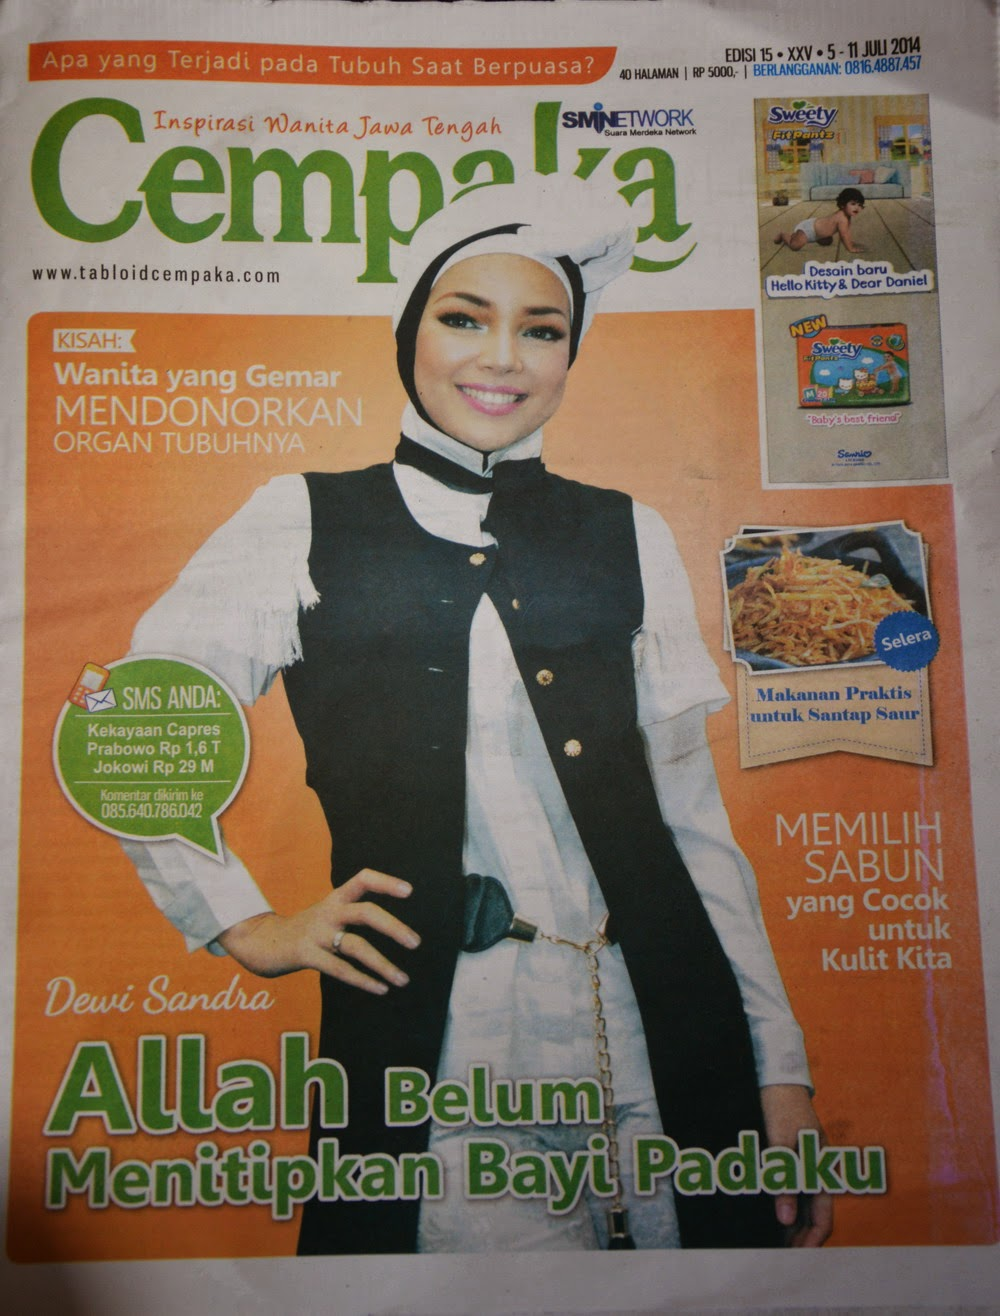 @ Tabloid Cempaka